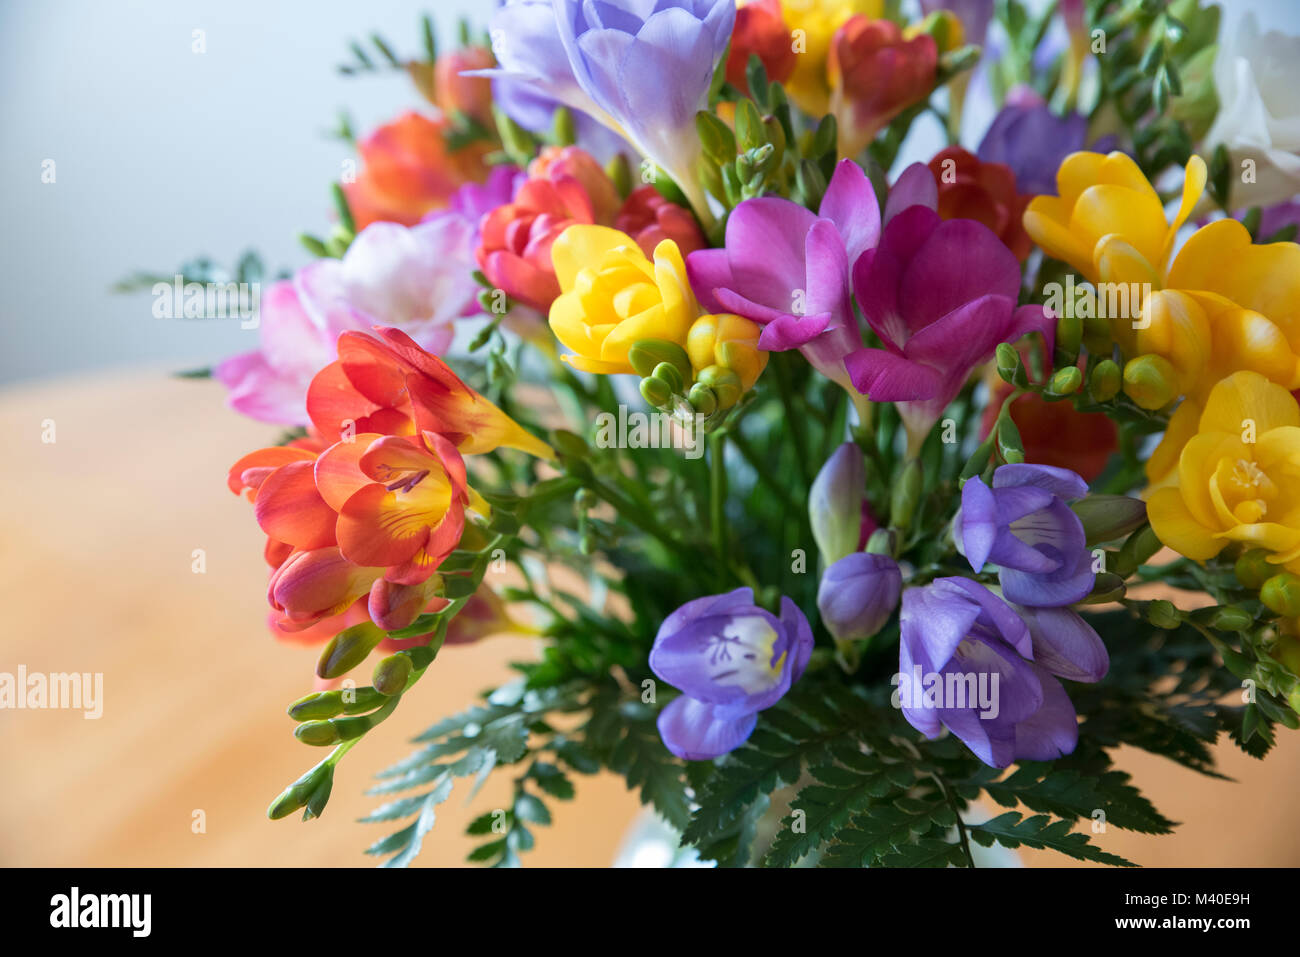 Colorful flower bouquet in a glass bowl on a wooden table Stock ...